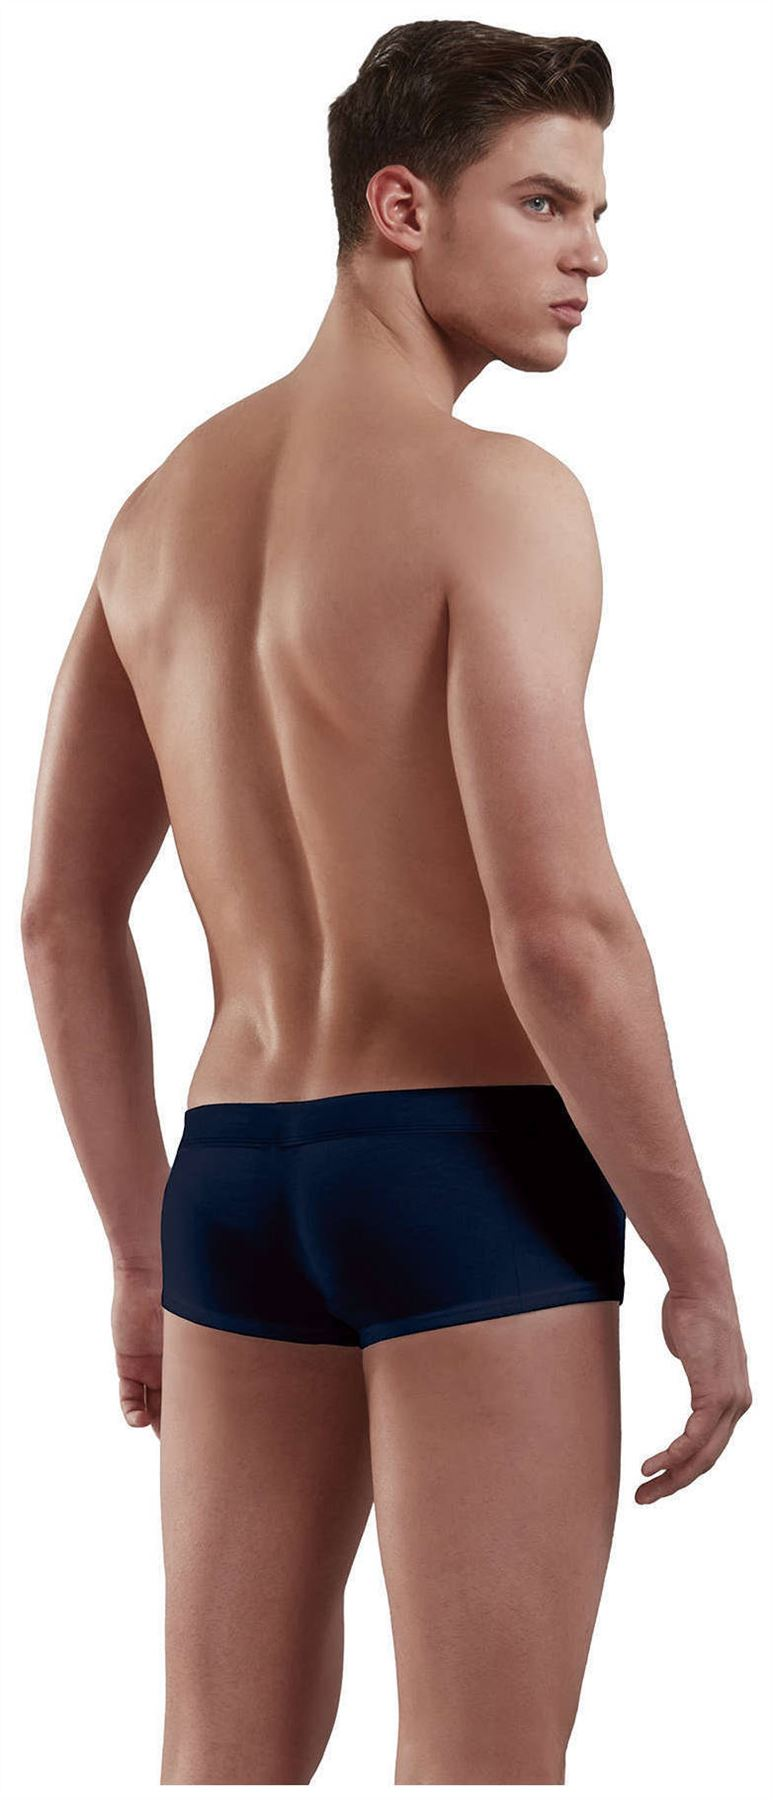 Doreanse-1750-Adonis-Anatomical-Trunk-Supportive-Enhancing-Men-039-s-underwear miniatura 5